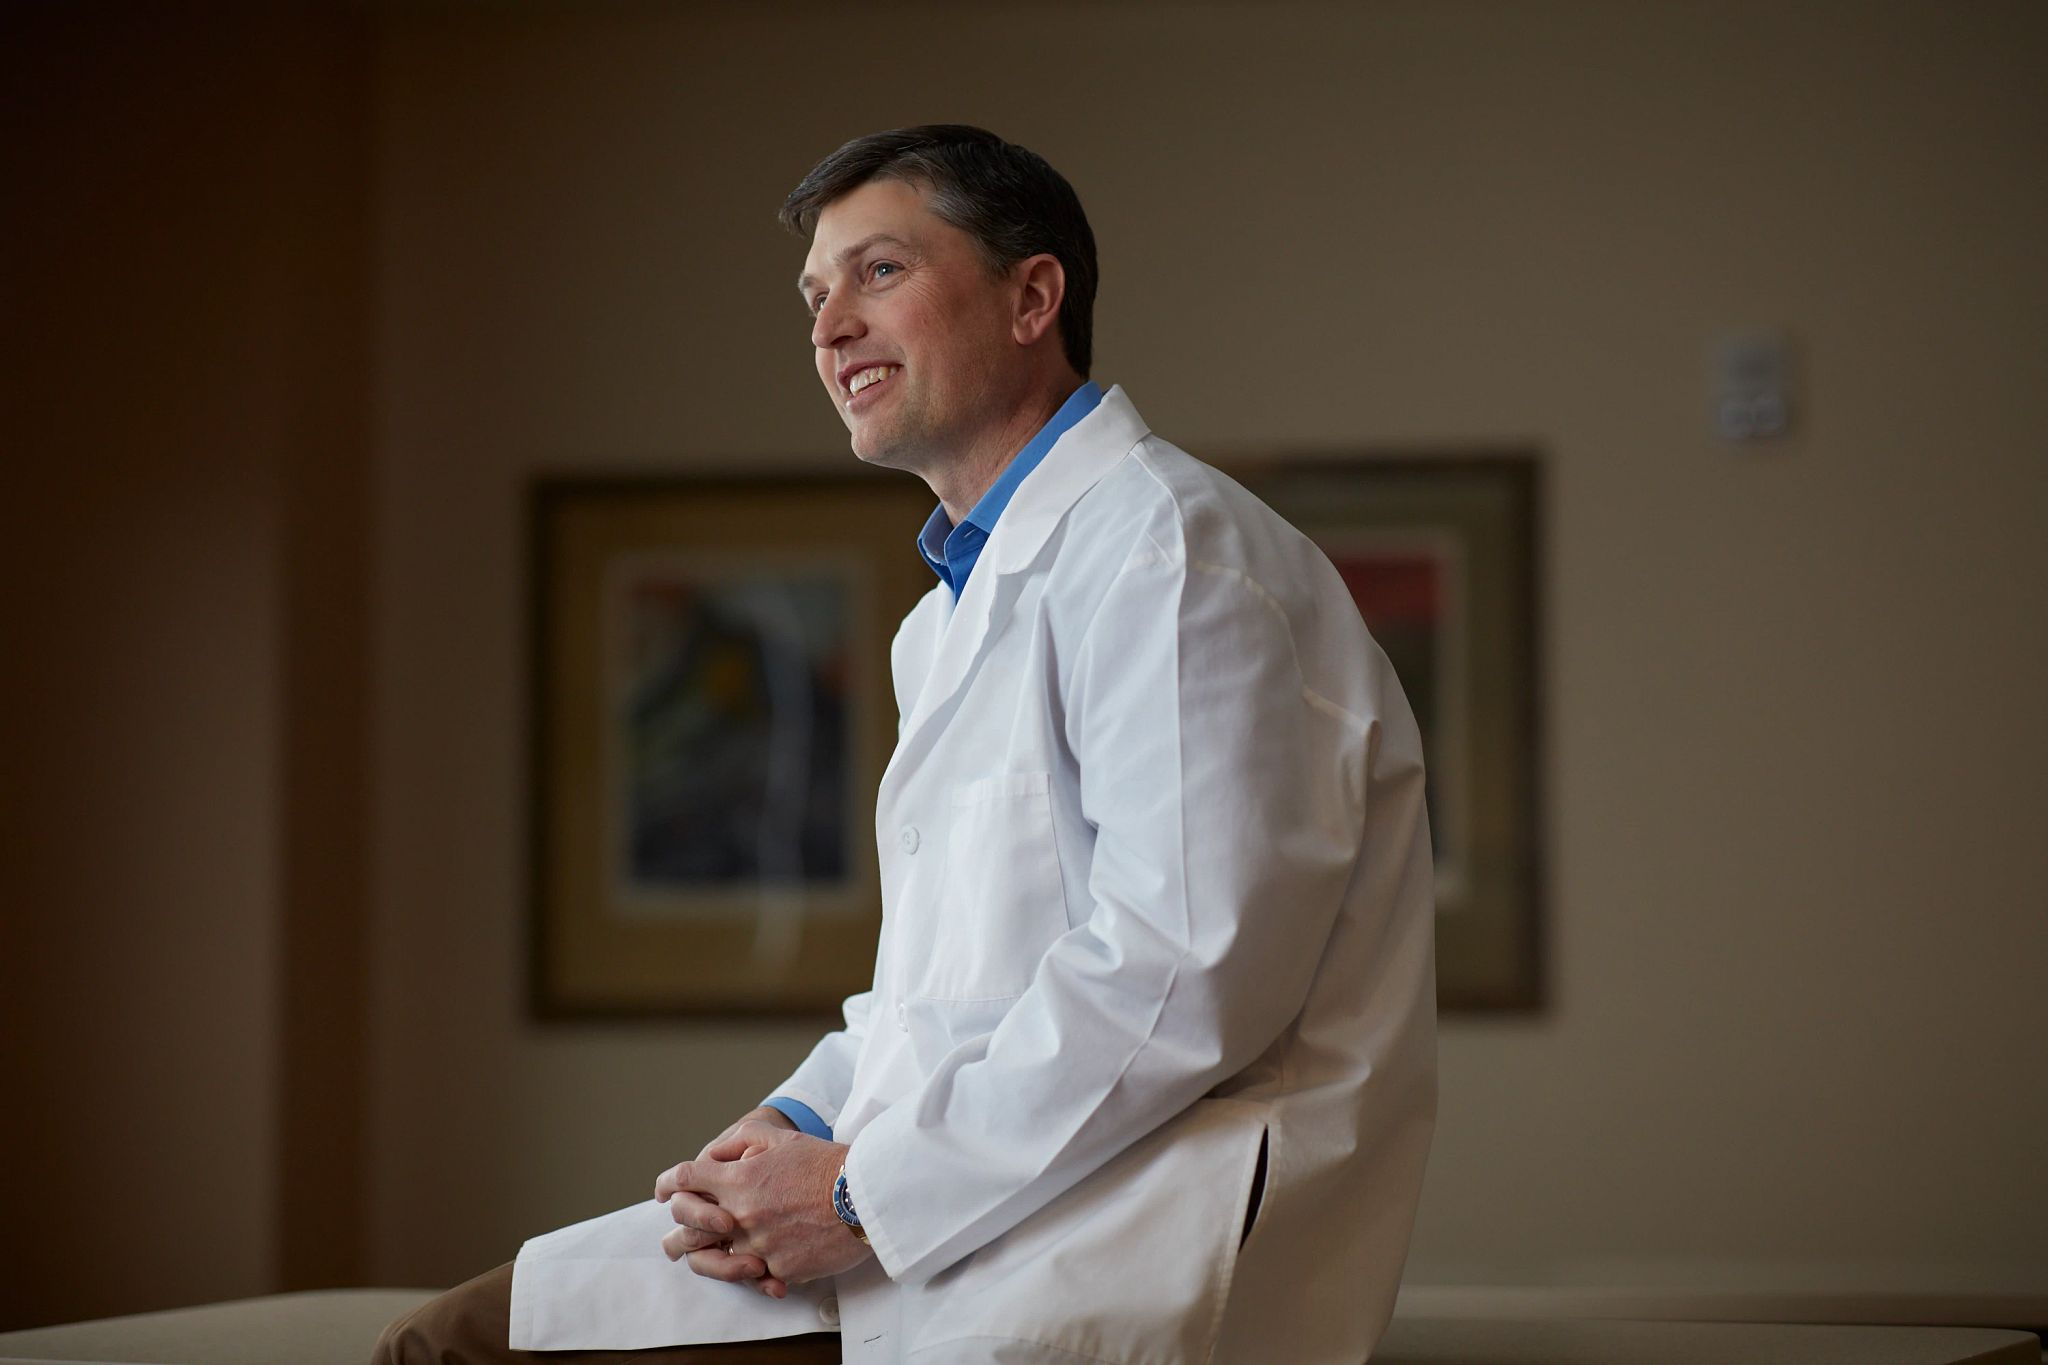 Cancer Physician